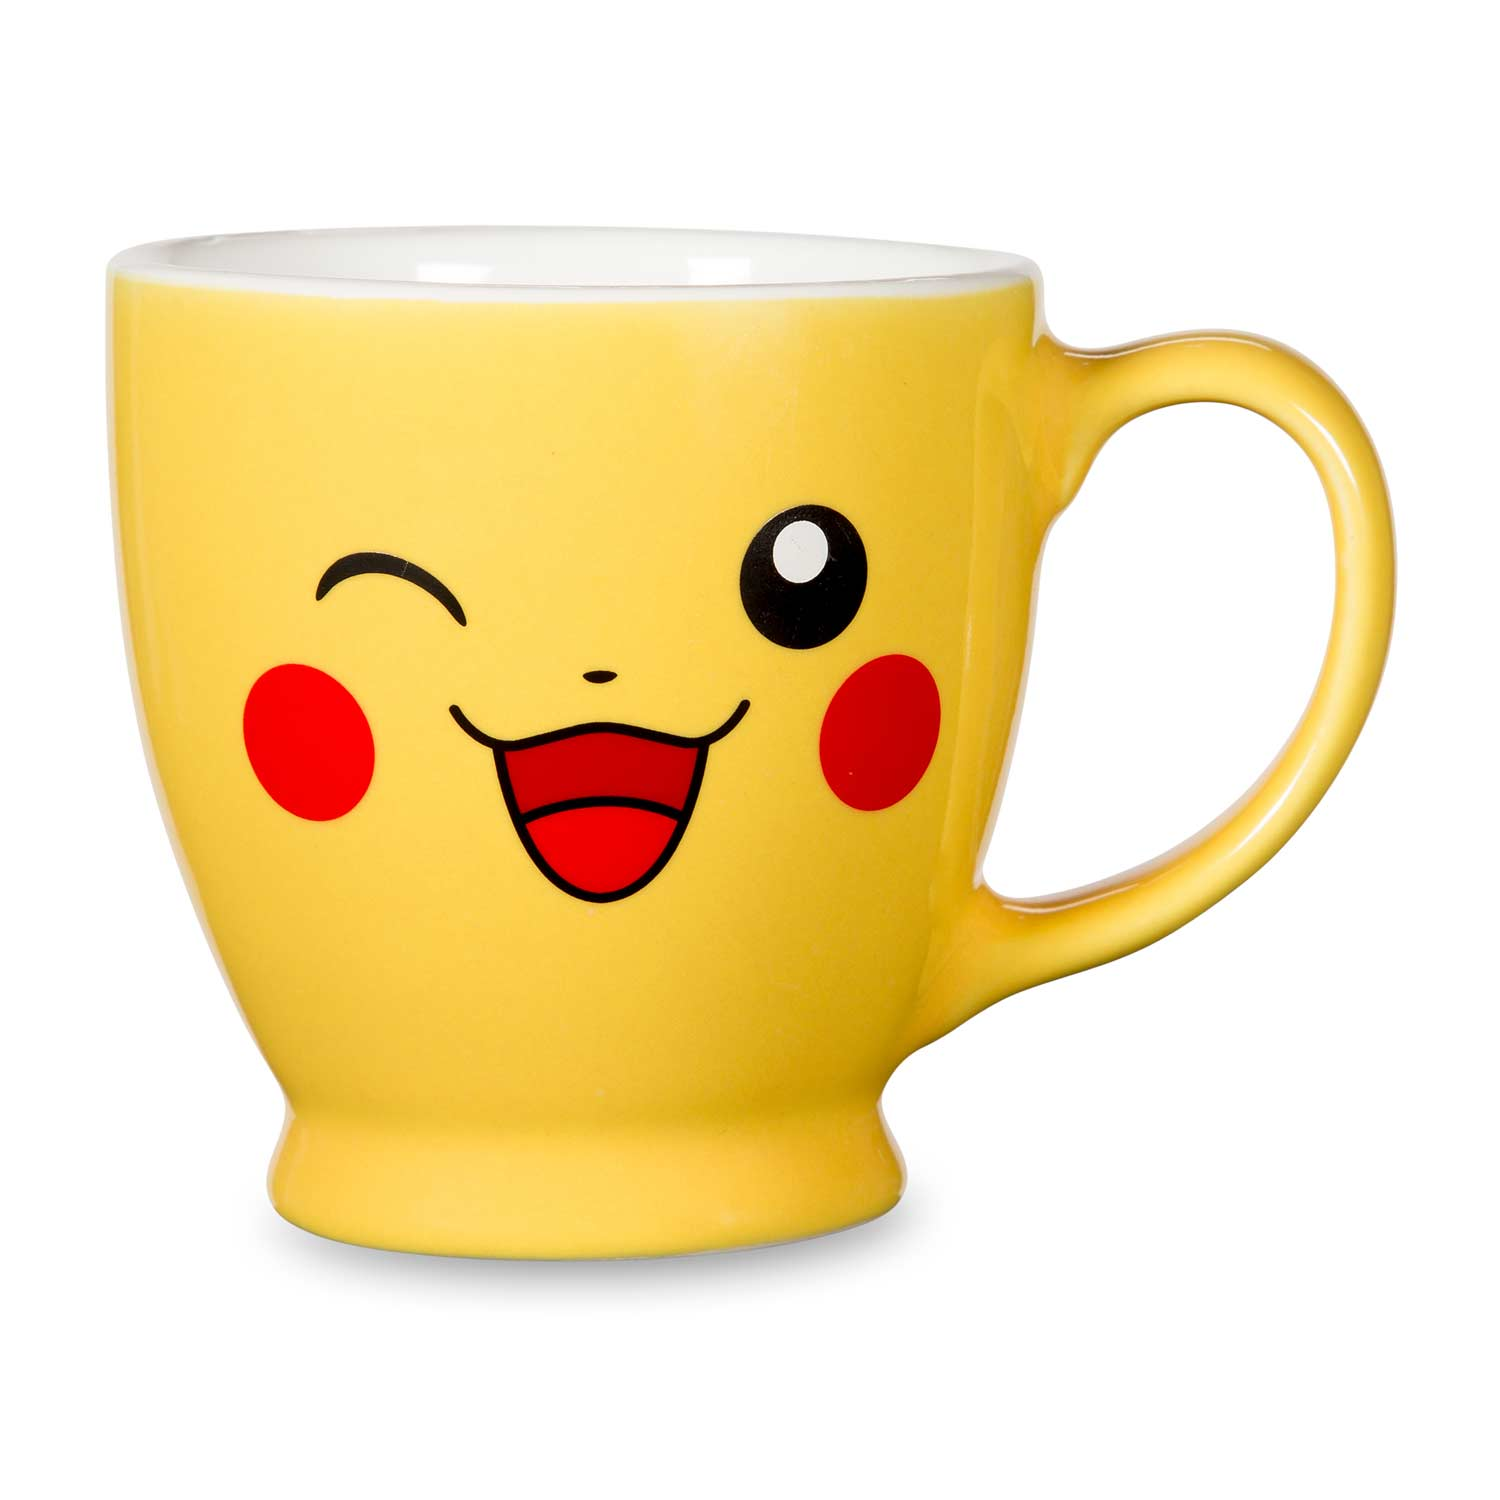 pikachu 12 oz mug big face made in usa pok mon. Black Bedroom Furniture Sets. Home Design Ideas